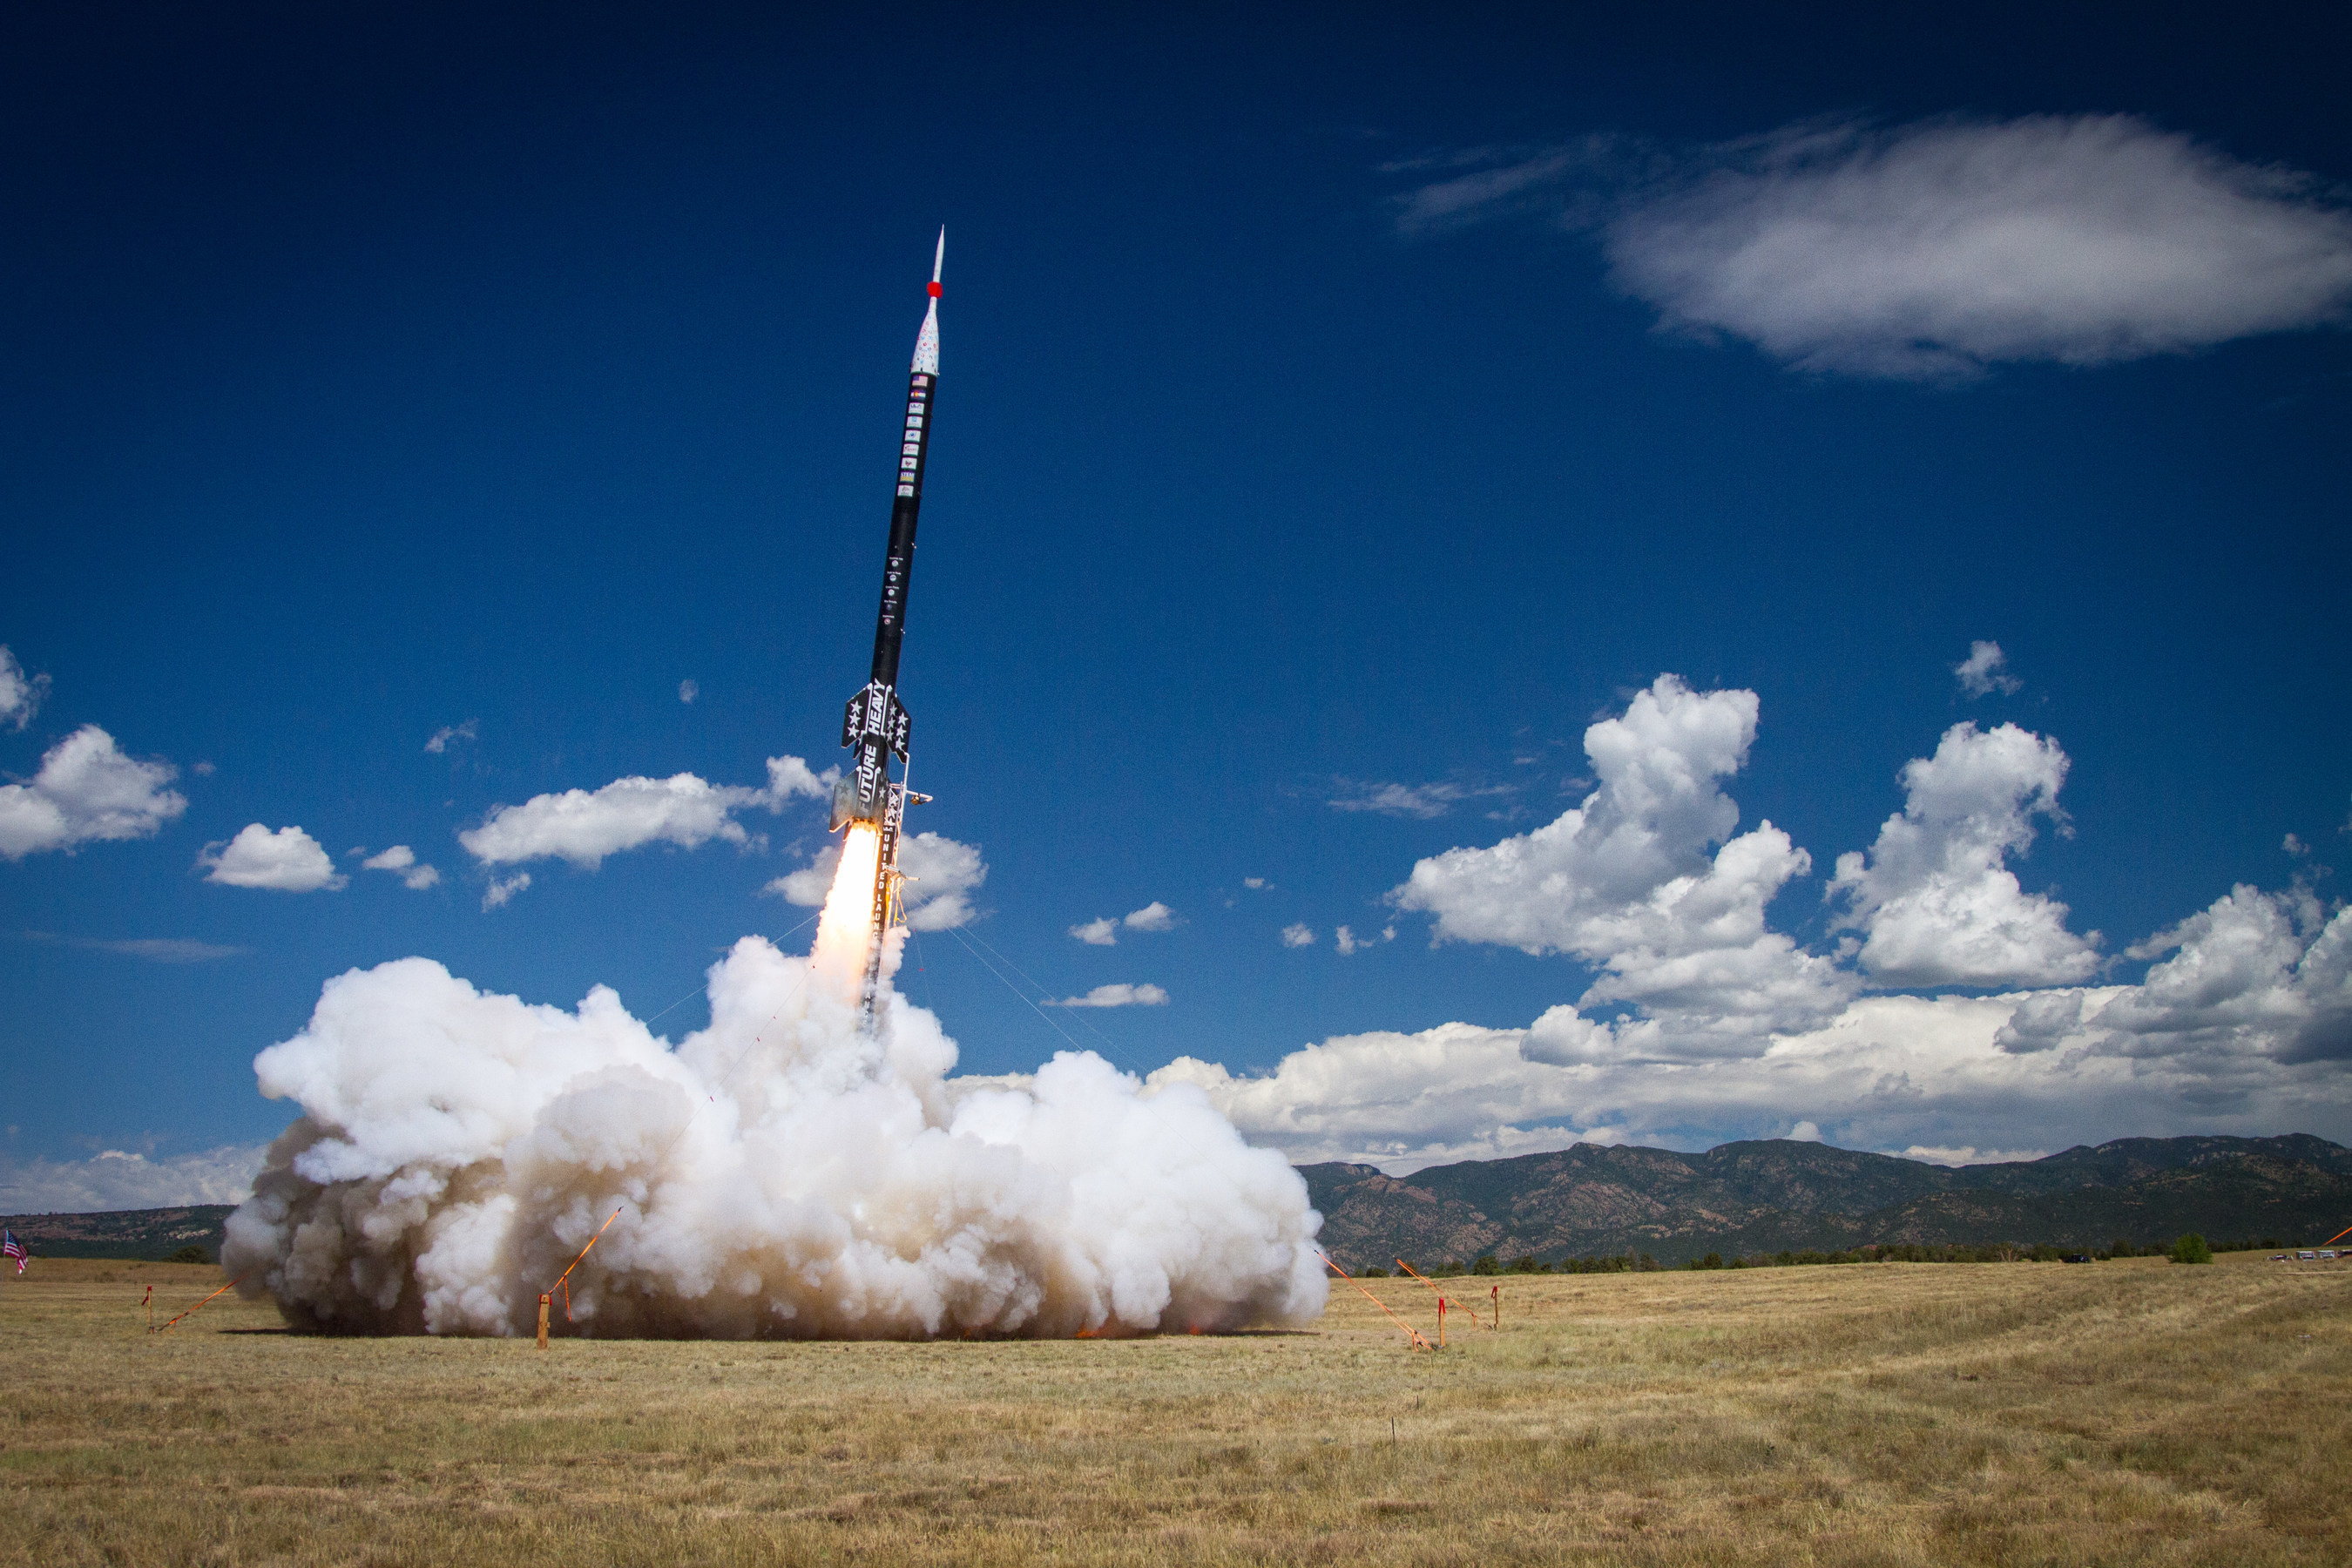 The Future Heavy rocket, built by interns across ULA, blasts off from Fort Carson, Colorado, carrying payloads built by interns at Ball Aerospace as well as K-12 students from across Colorado. At 50 feet tall, the ULA intern-built Future Heavy is the largest sport rocket ever to launch in the world.